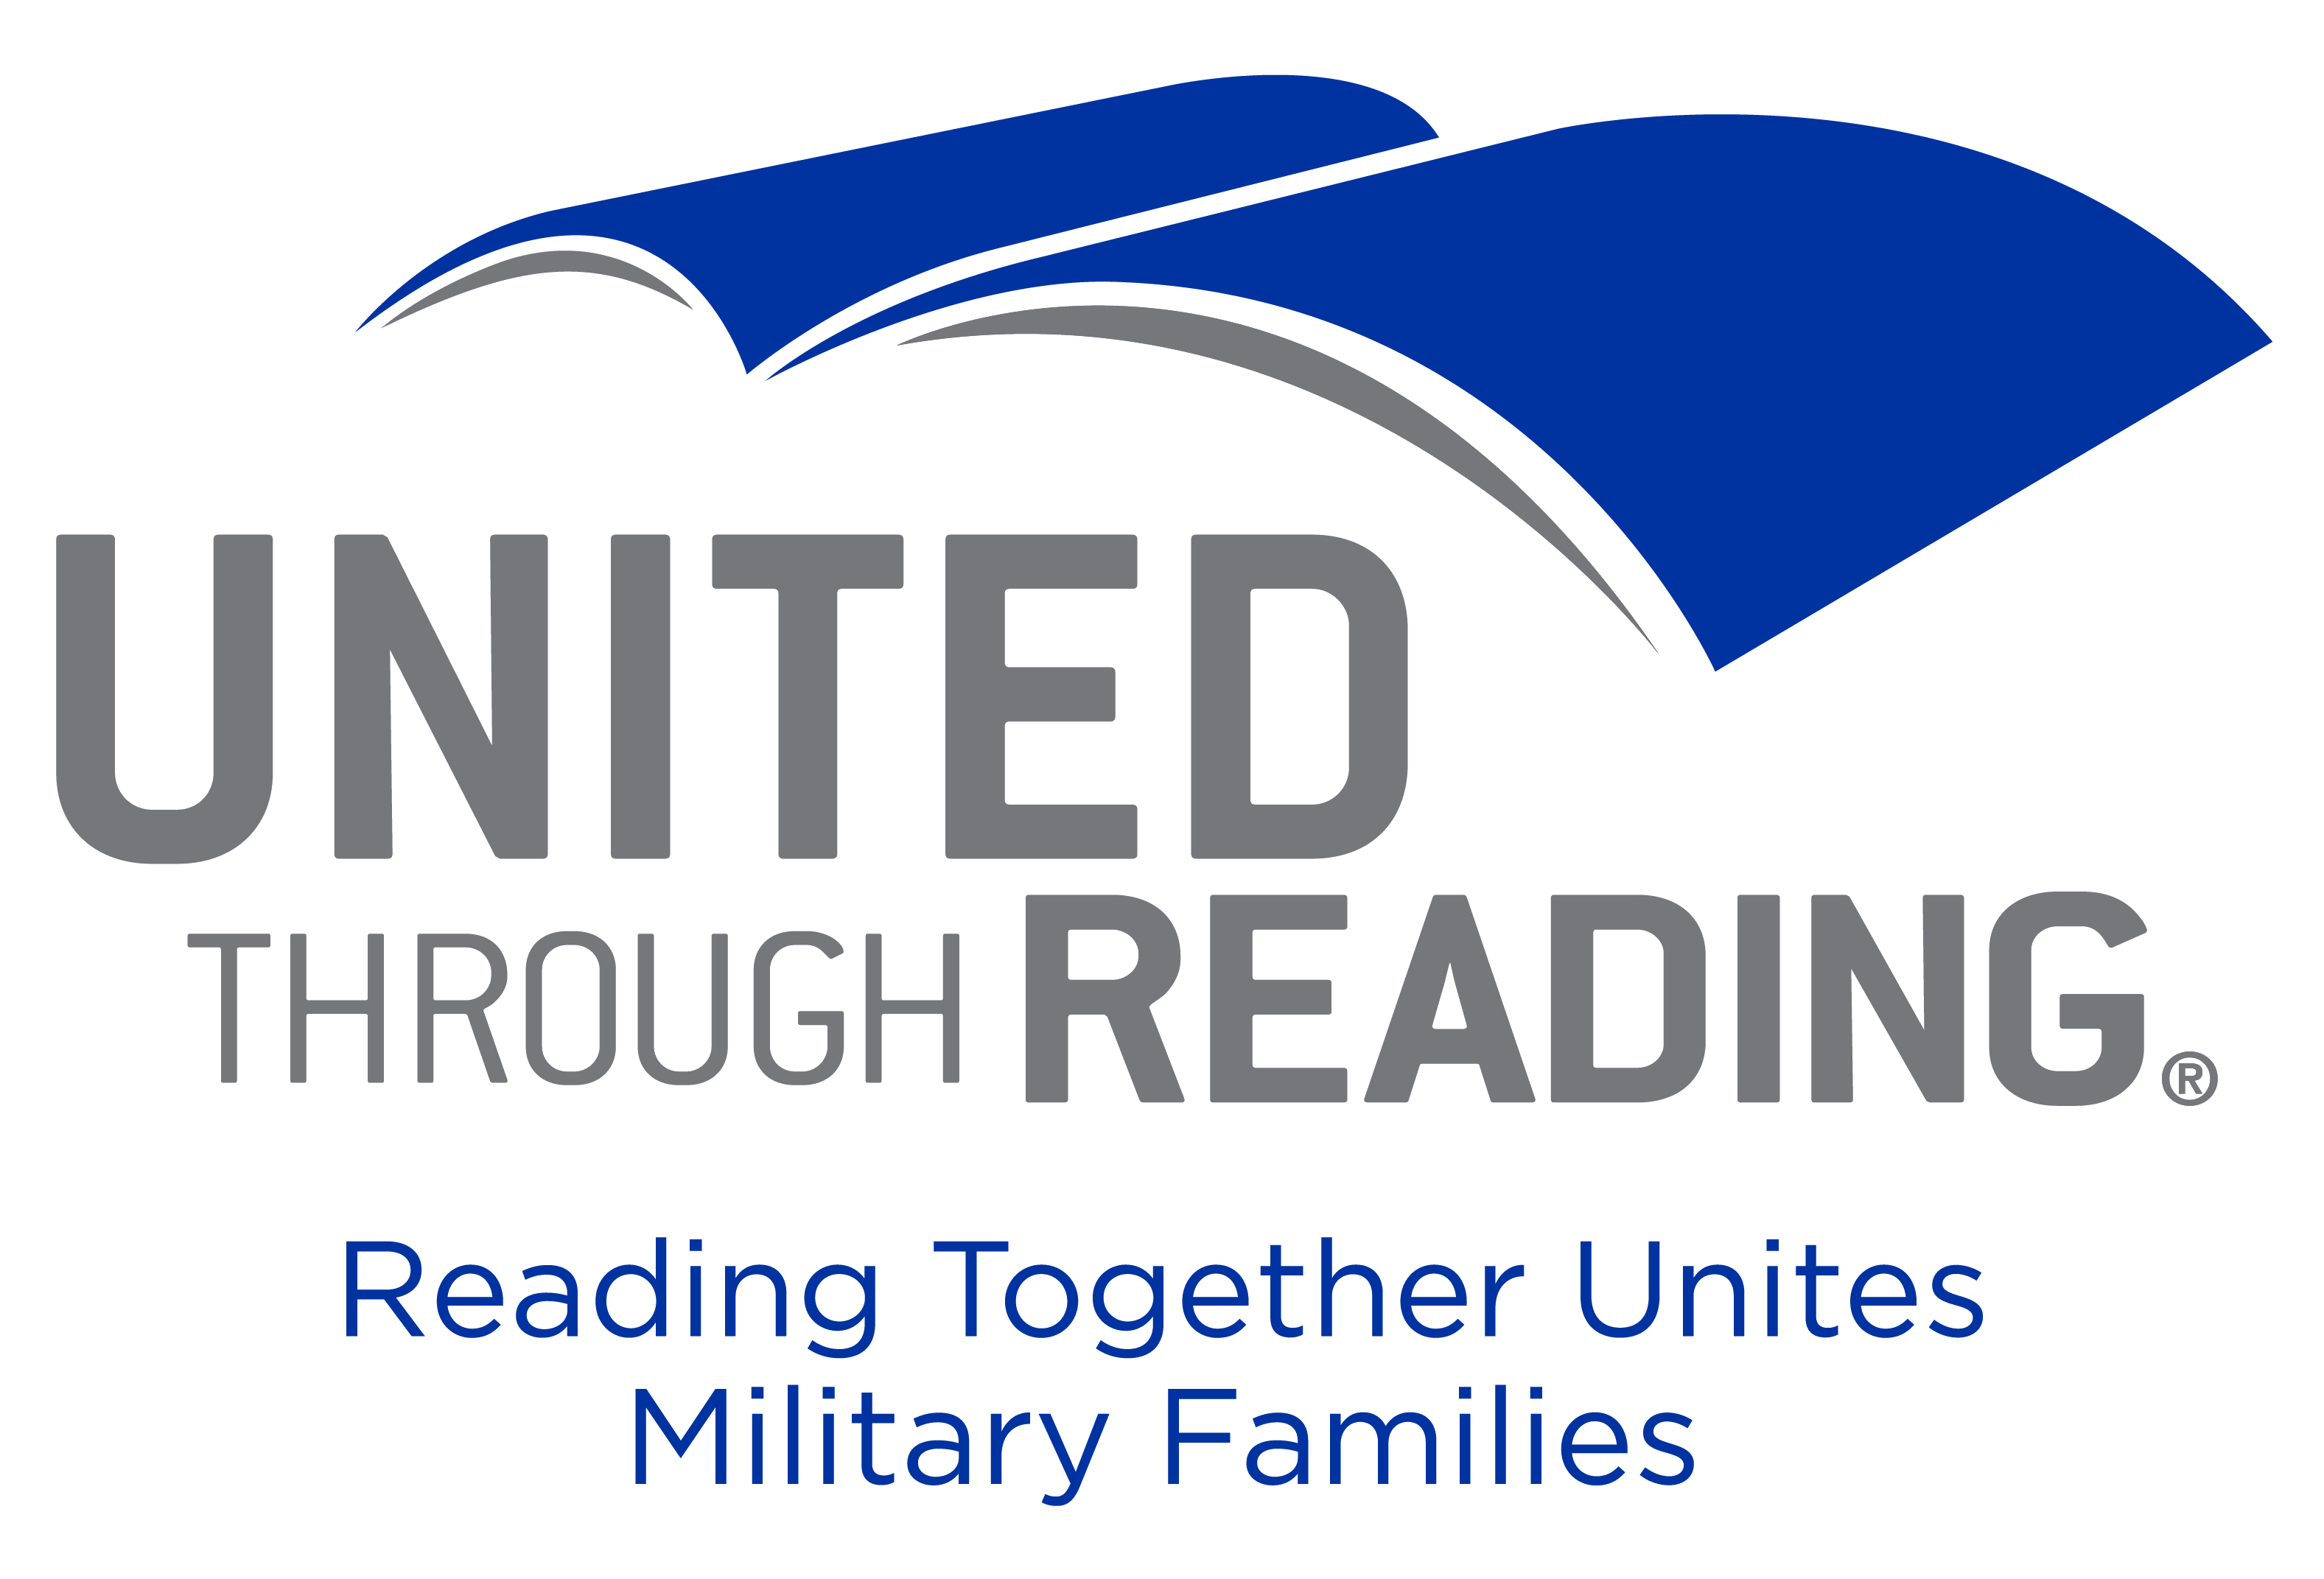 United Through Reading - Reading Together United Military Families logo